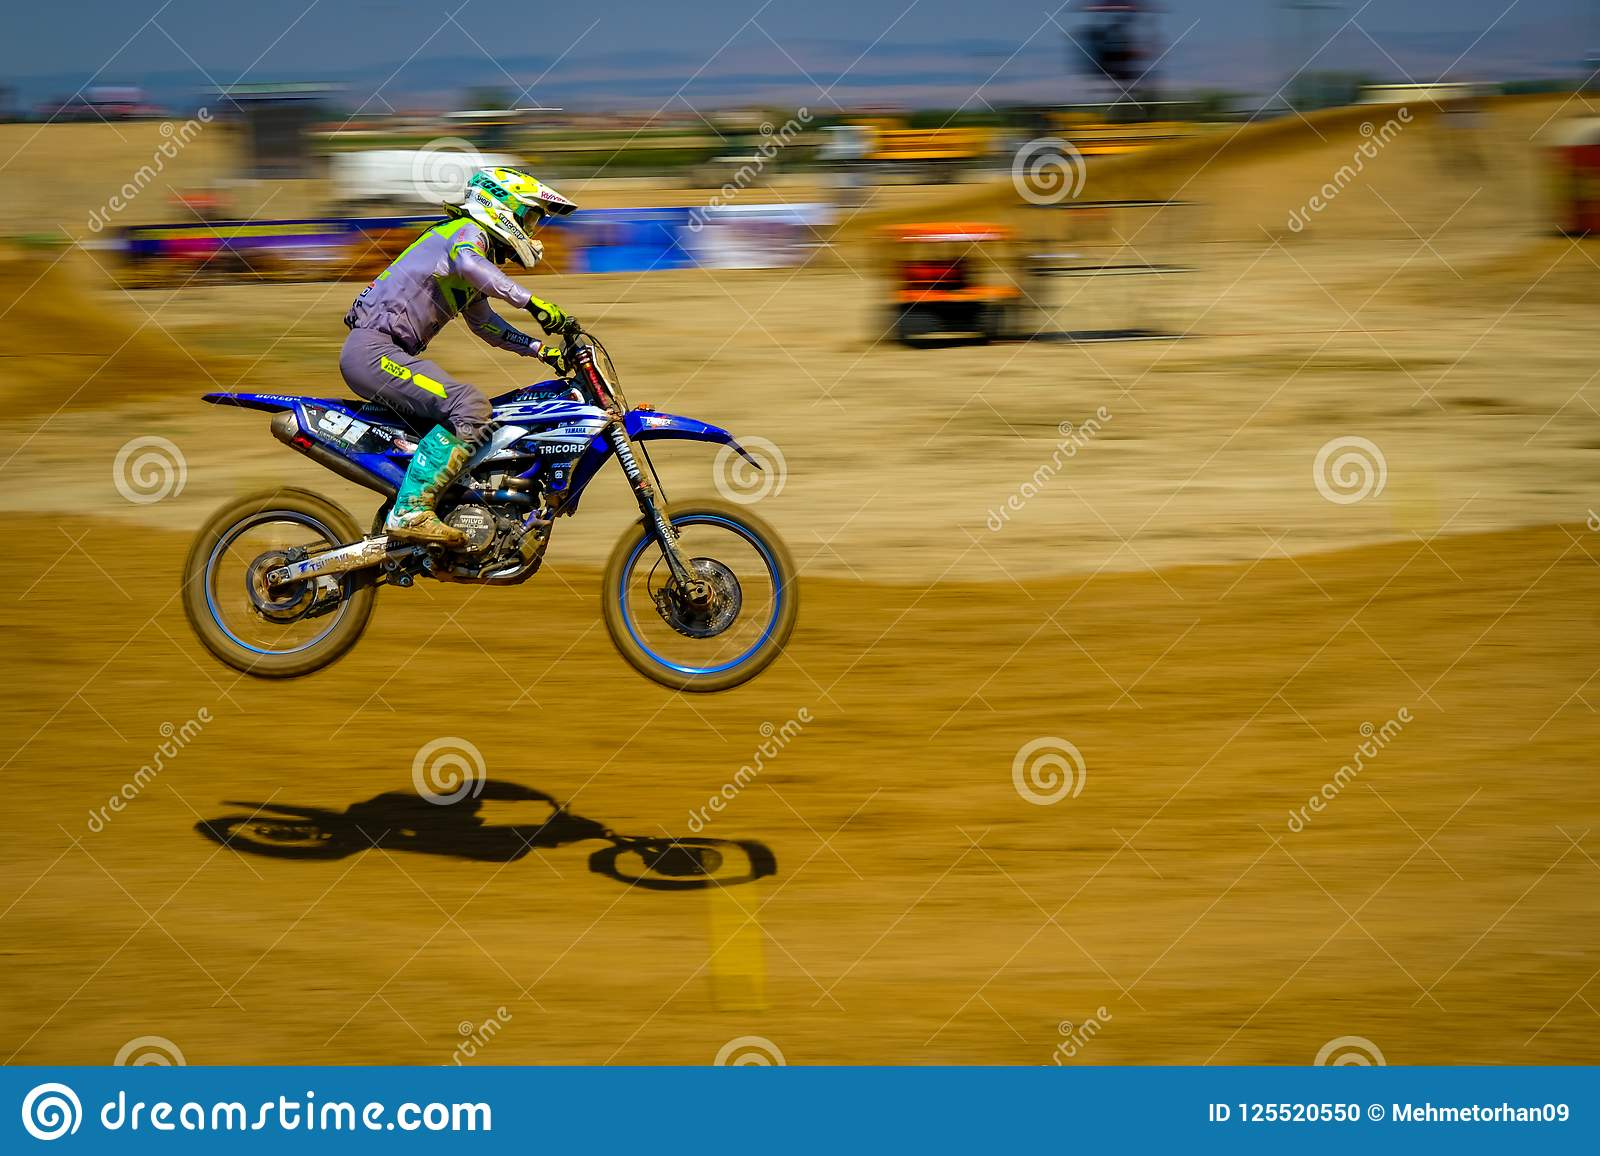 Speedy Dirt Bike At Motocross Race Driving Fast